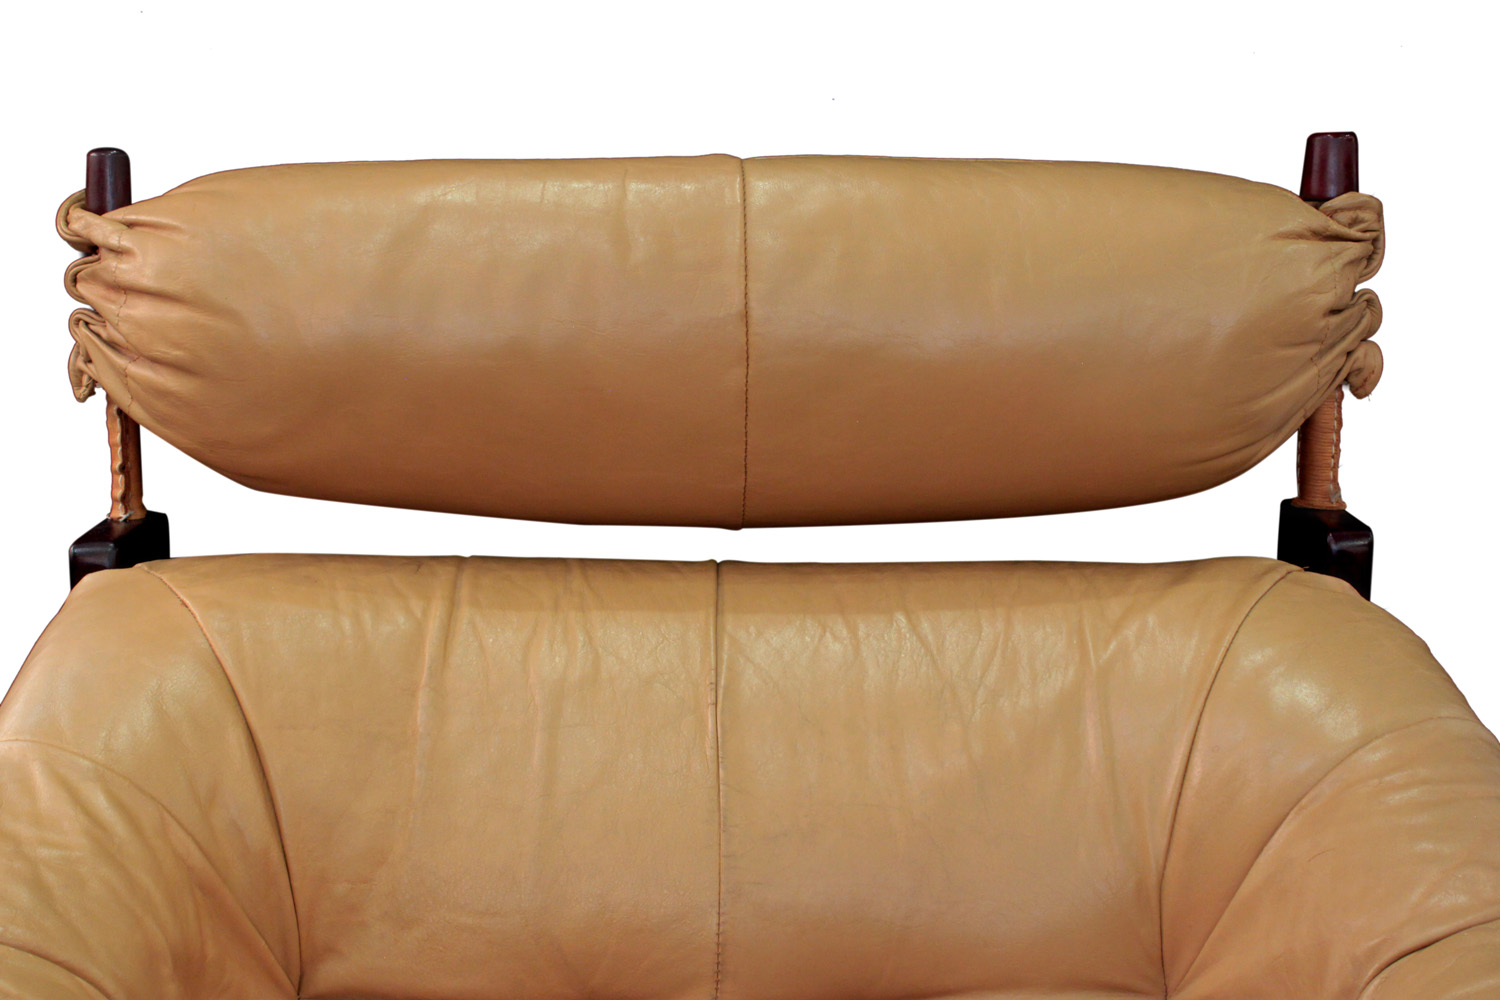 Lafter 45 rosewood+leather seat loungechair89 detail3 hires.jpg